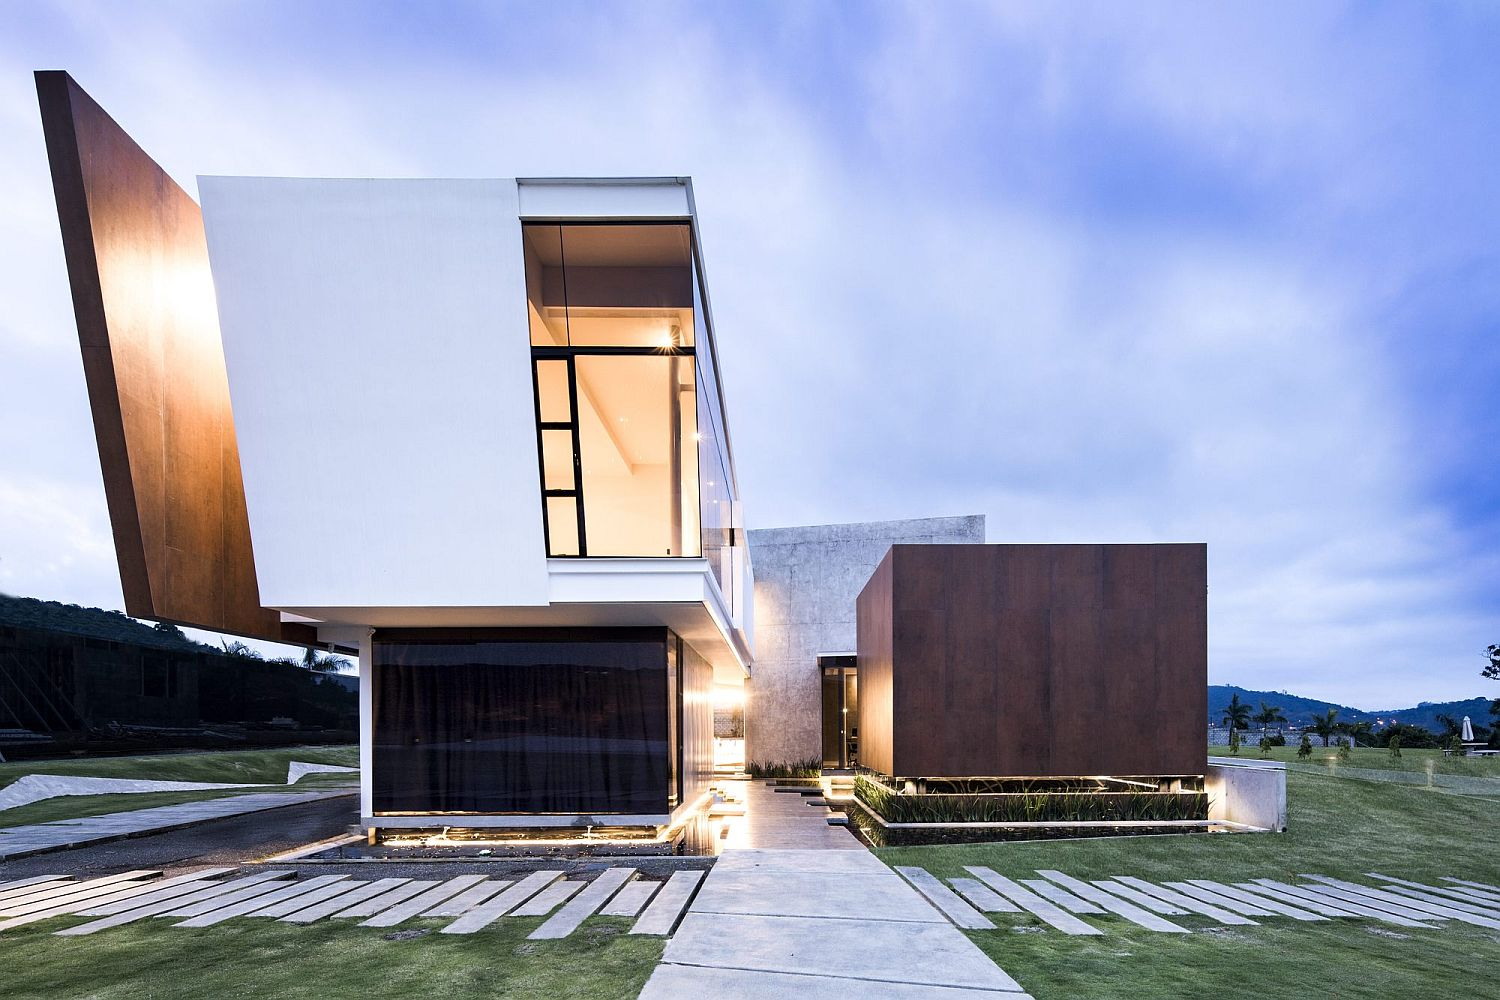 Creative-design-of-the-contemporary-home-deals-with-the-cubic-form